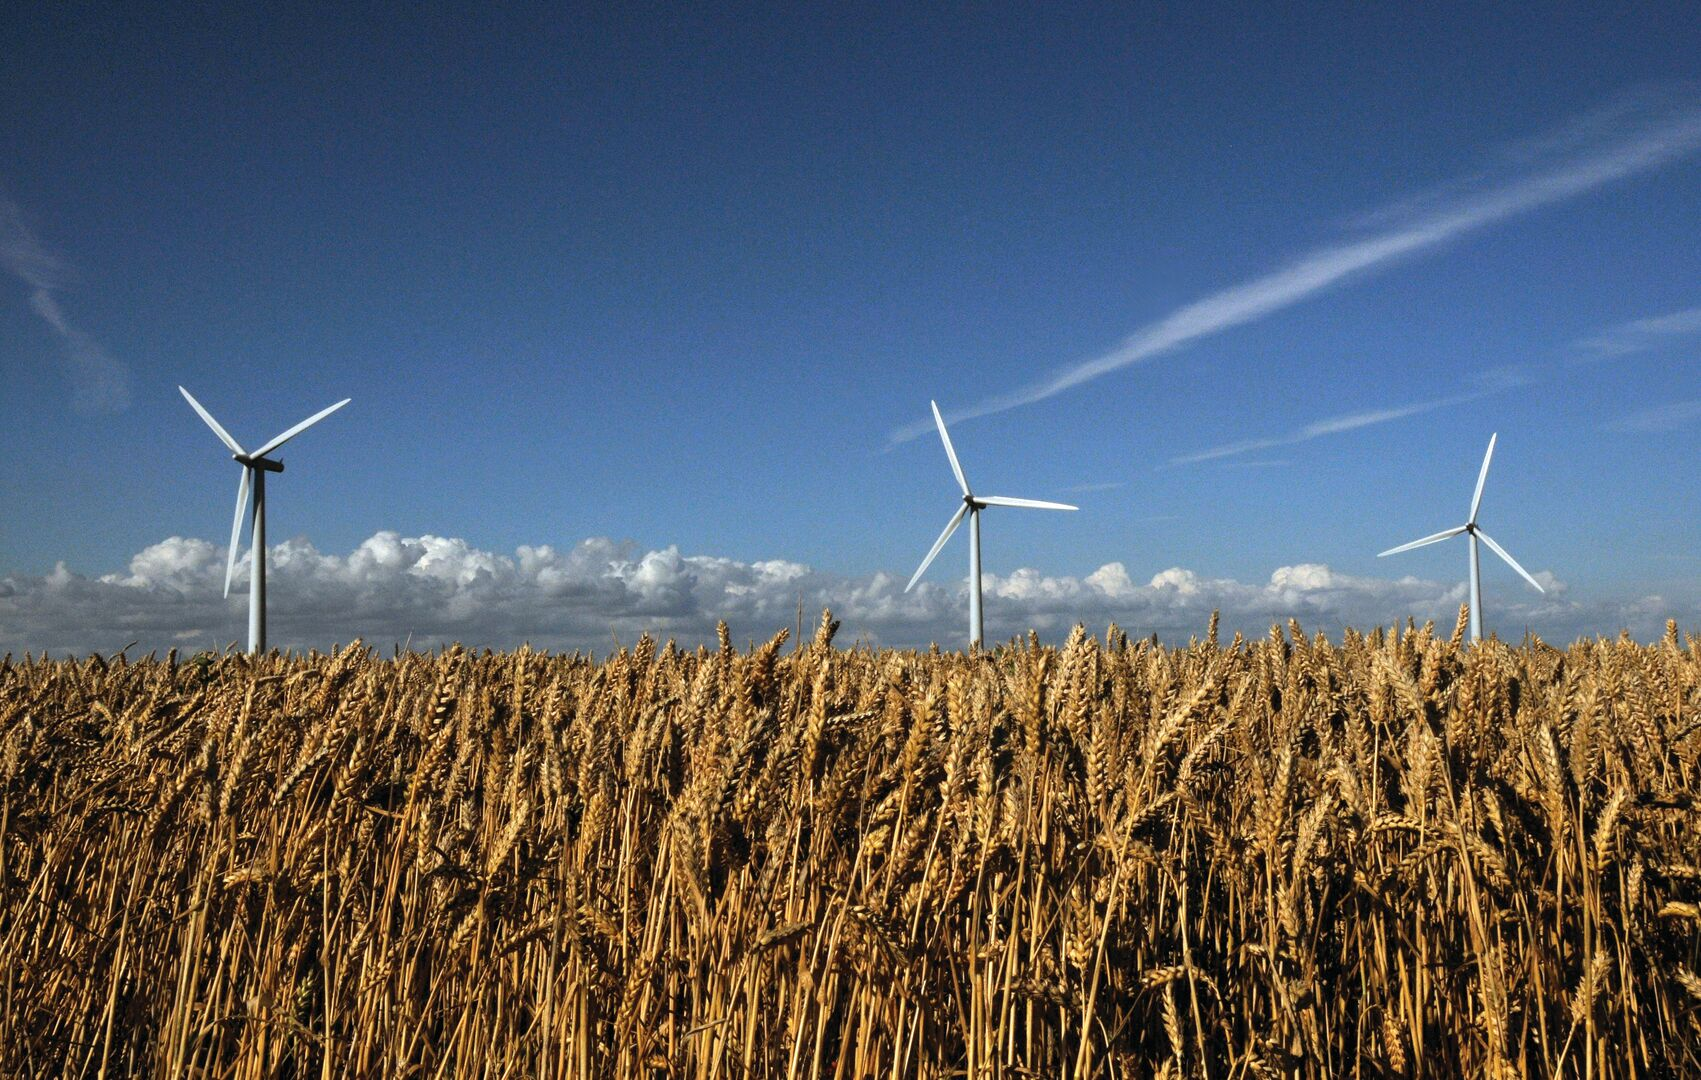 Wind turbines against a blue sky